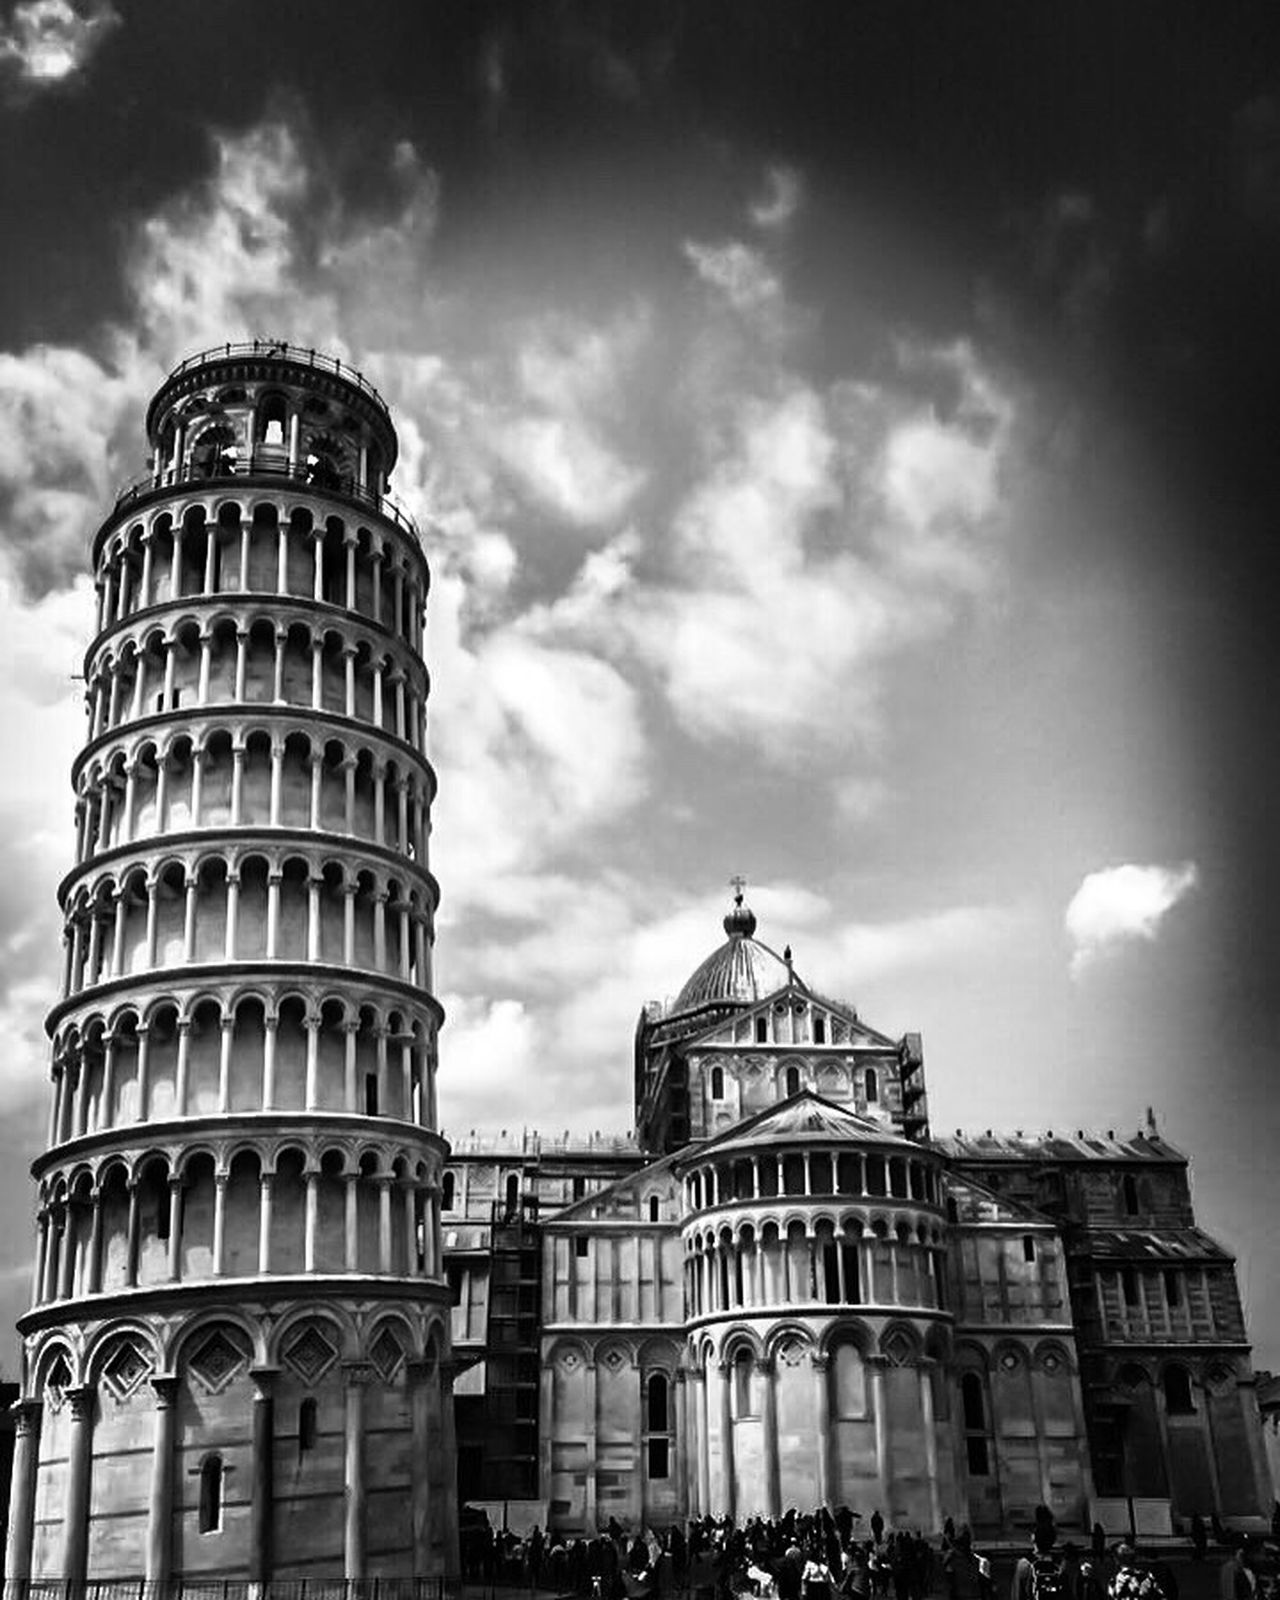 Pisa Pisa Tower Architecture Building Exterior Built Structure Cloud - Sky Sky Low Angle View Outdoors Travel Destinations City No People Day Italy Italia Blackandwhite Black And White Black And White Photography The Street Photographer - 2017 EyeEm Awards The Architect - 2017 EyeEm Awards